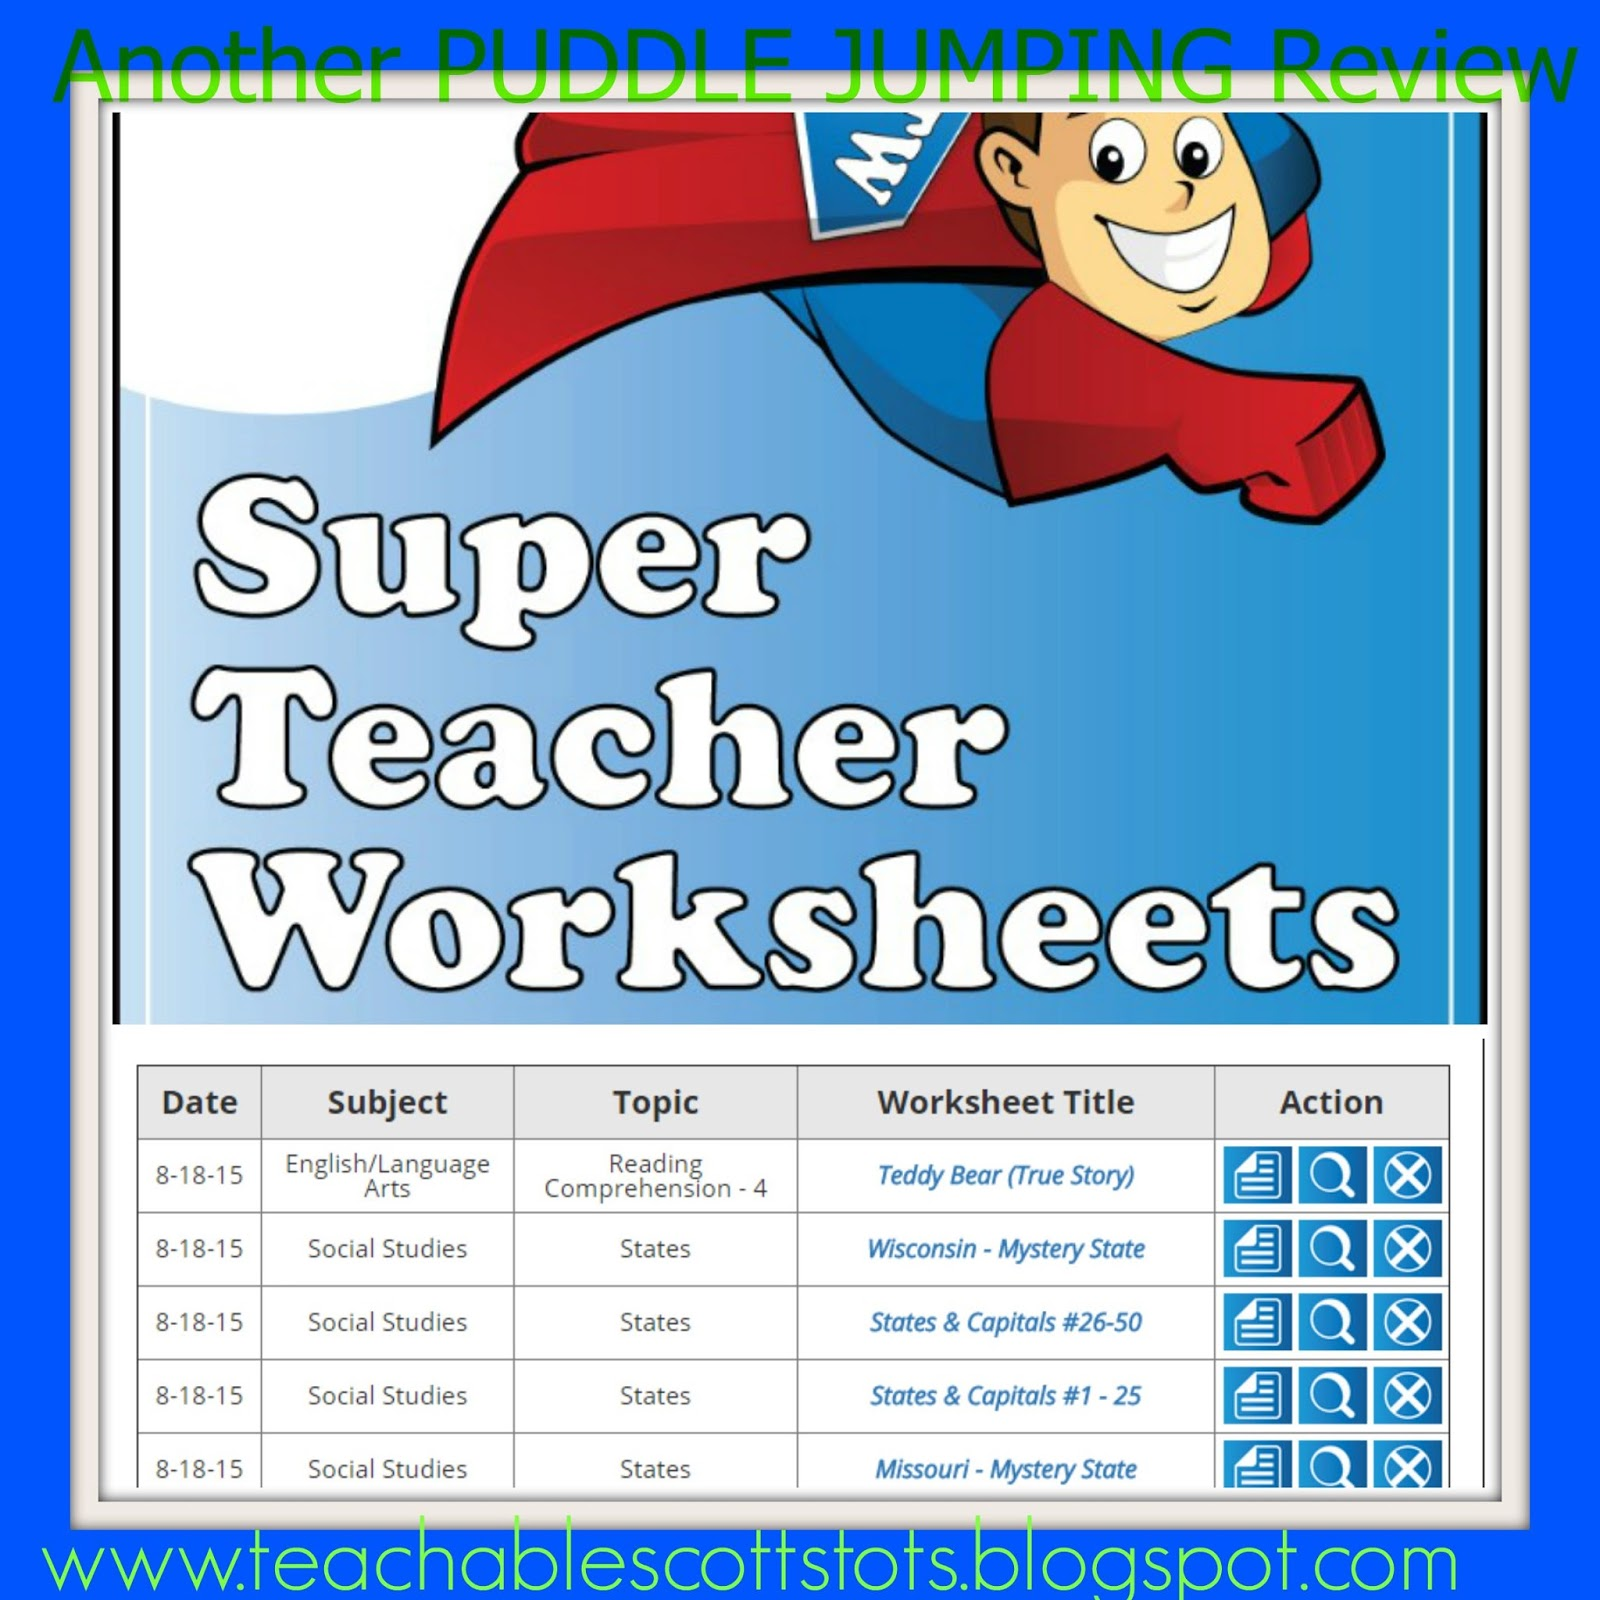 Puddle Jumping: TOS Review - Super Teacher Worksheets